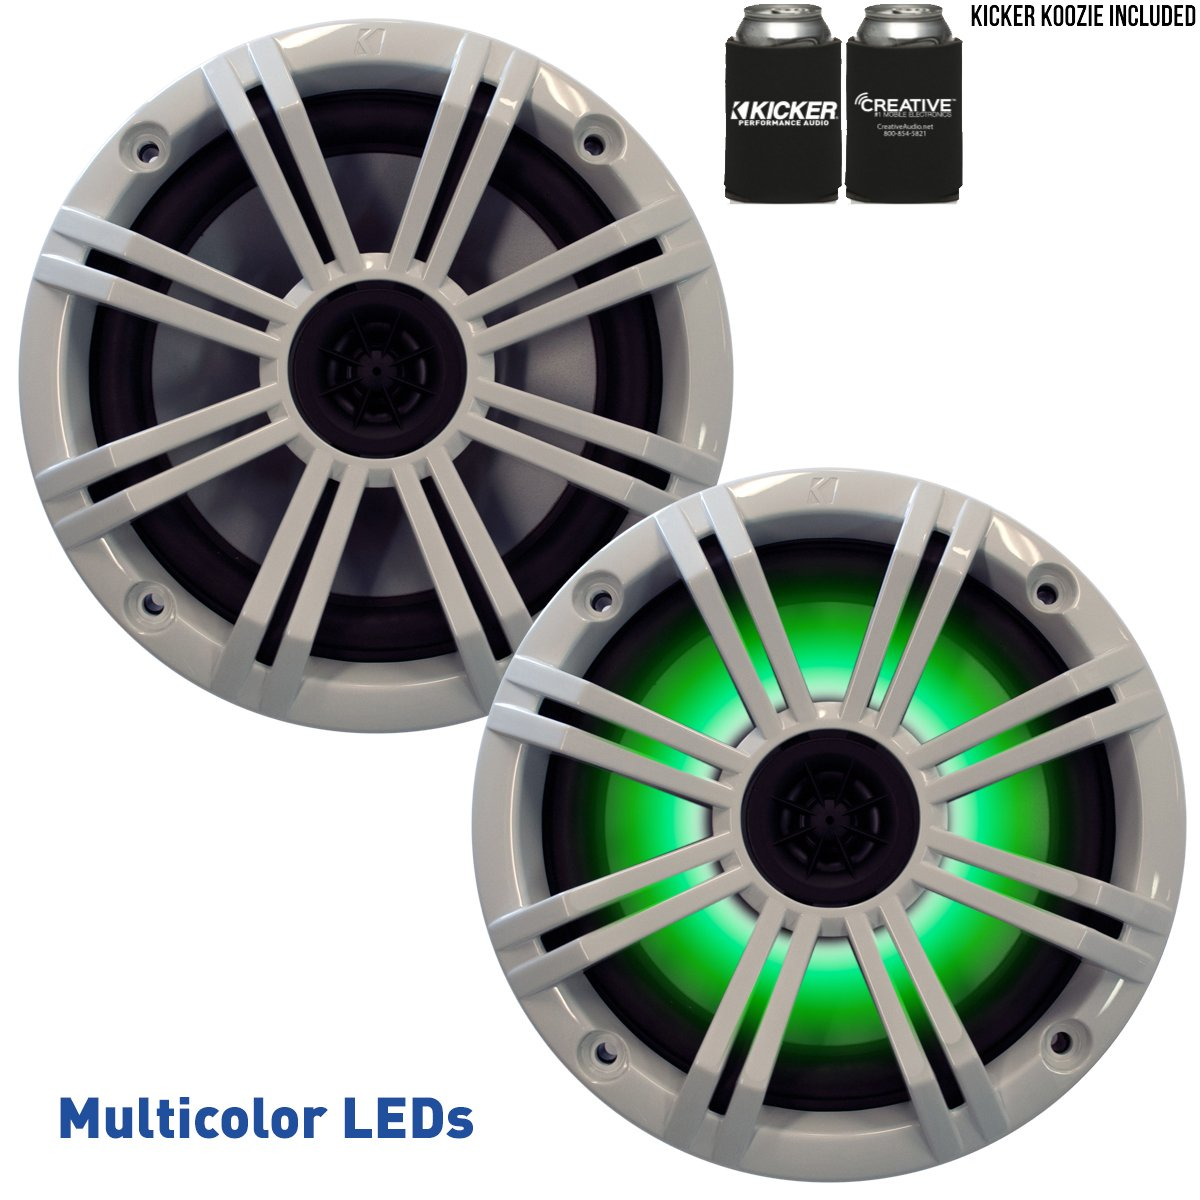 Kicker 6.5'' White LED Marine Speakers (QTY 2) 1 pair of OEM replacement speakers